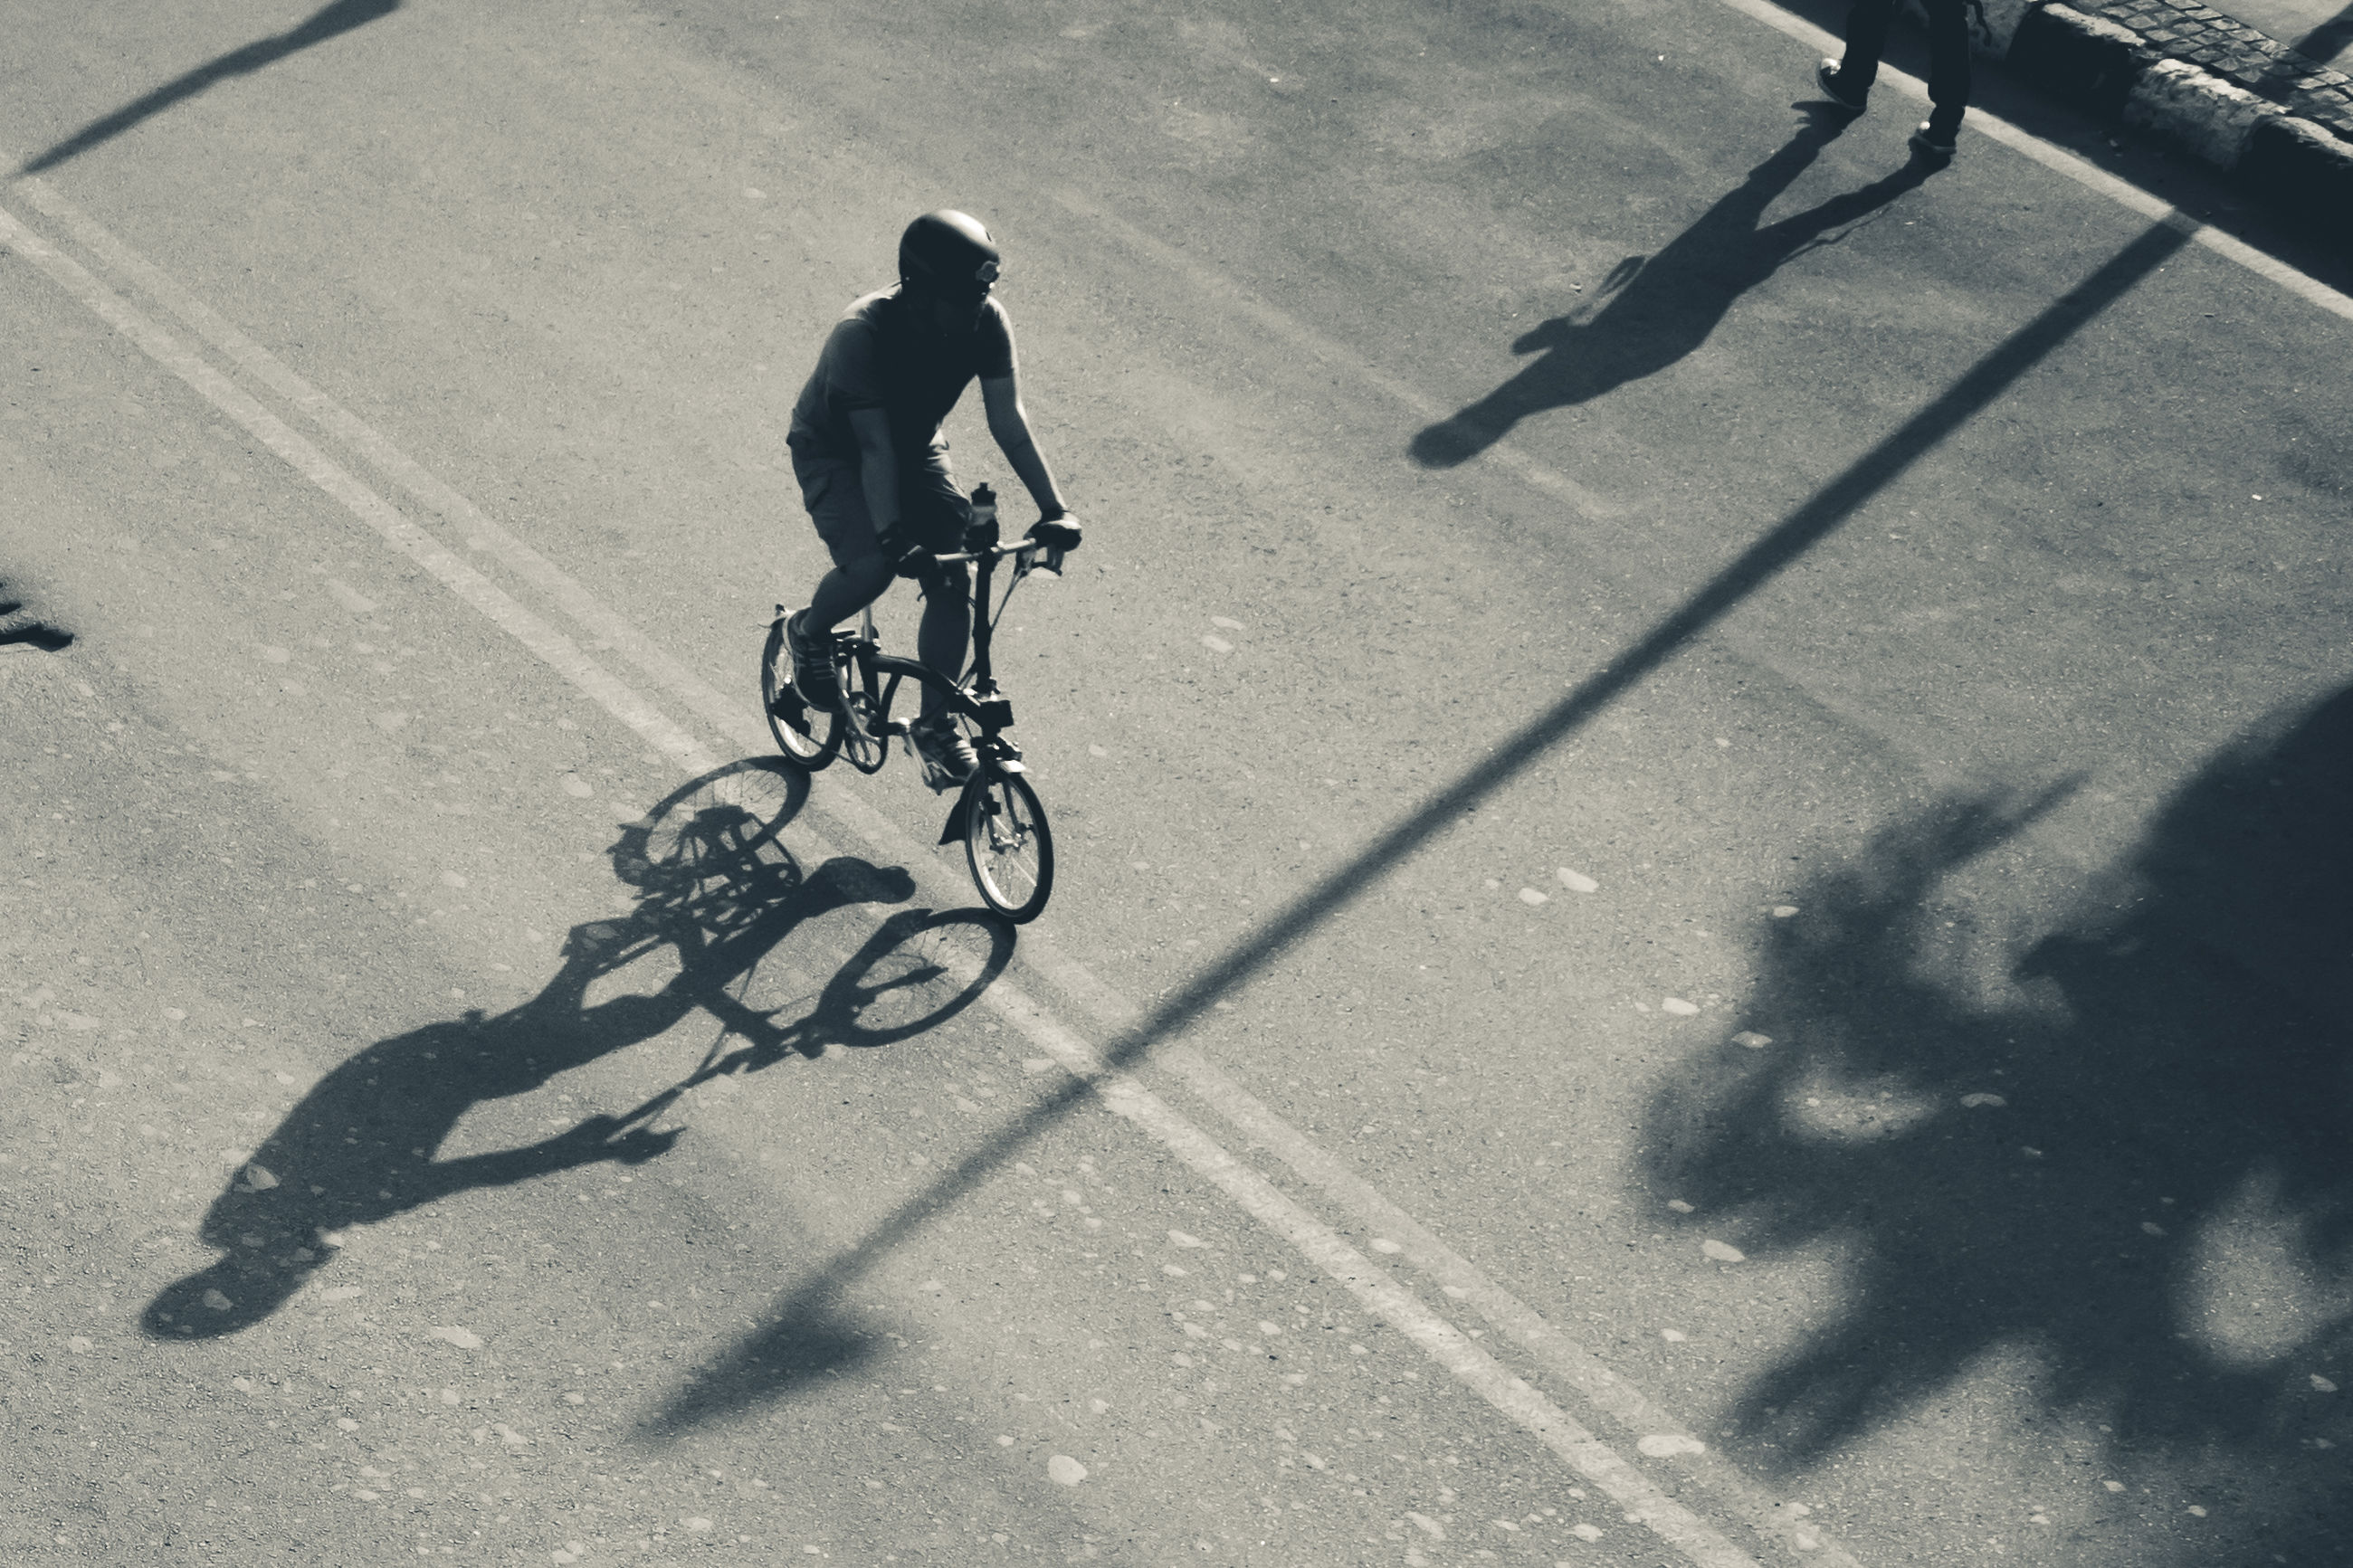 transportation, bicycle, shadow, men, sport, real people, sunlight, ride, riding, lifestyles, land vehicle, cycling, activity, city, full length, street, mode of transportation, motion, road, on the move, outdoors